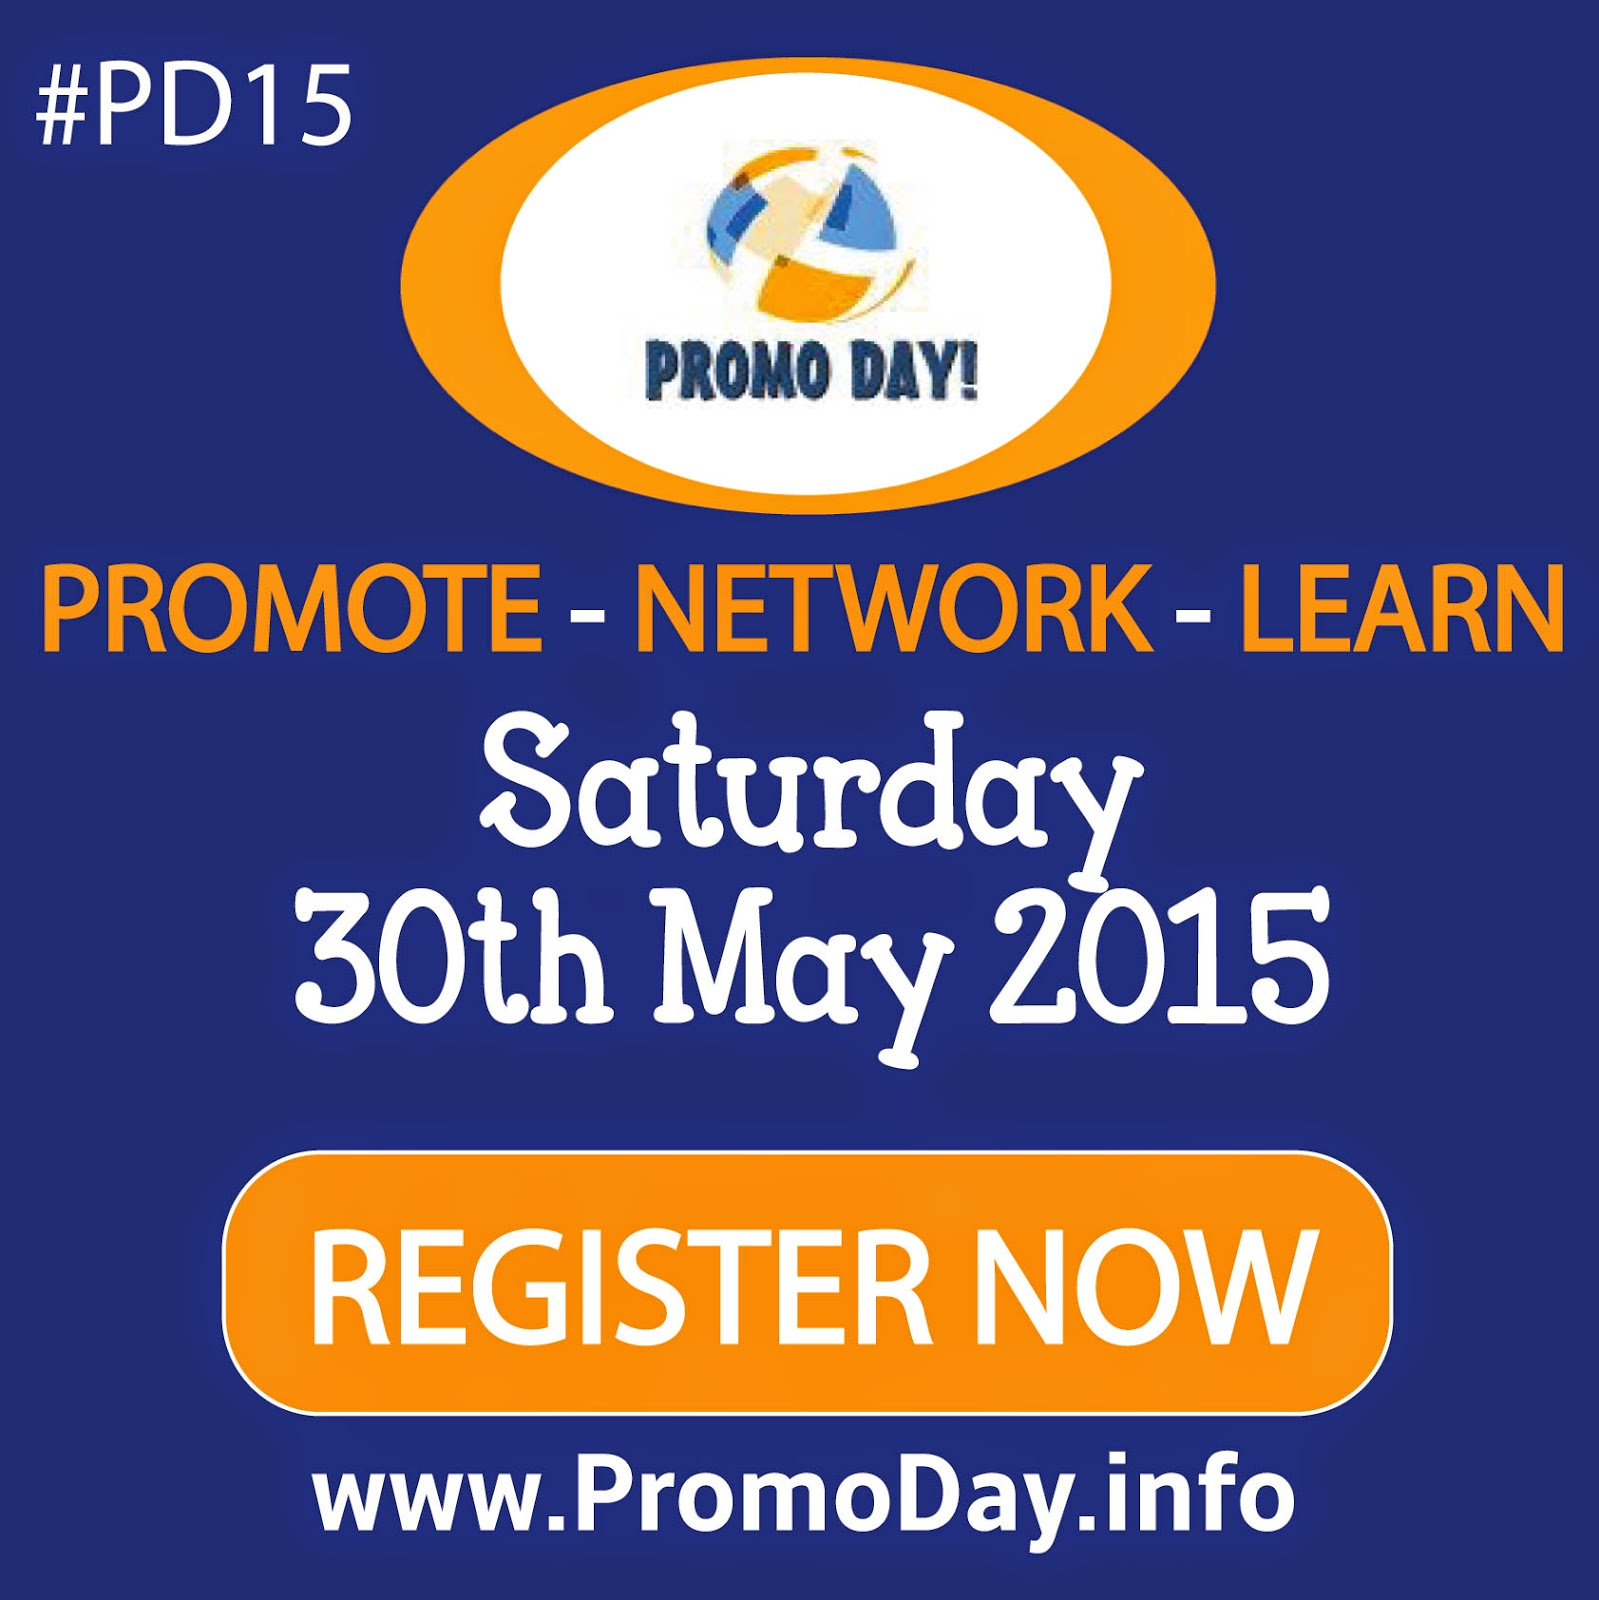 FAQ's About the Promo Day Event, Register now at www.PromoDay.info